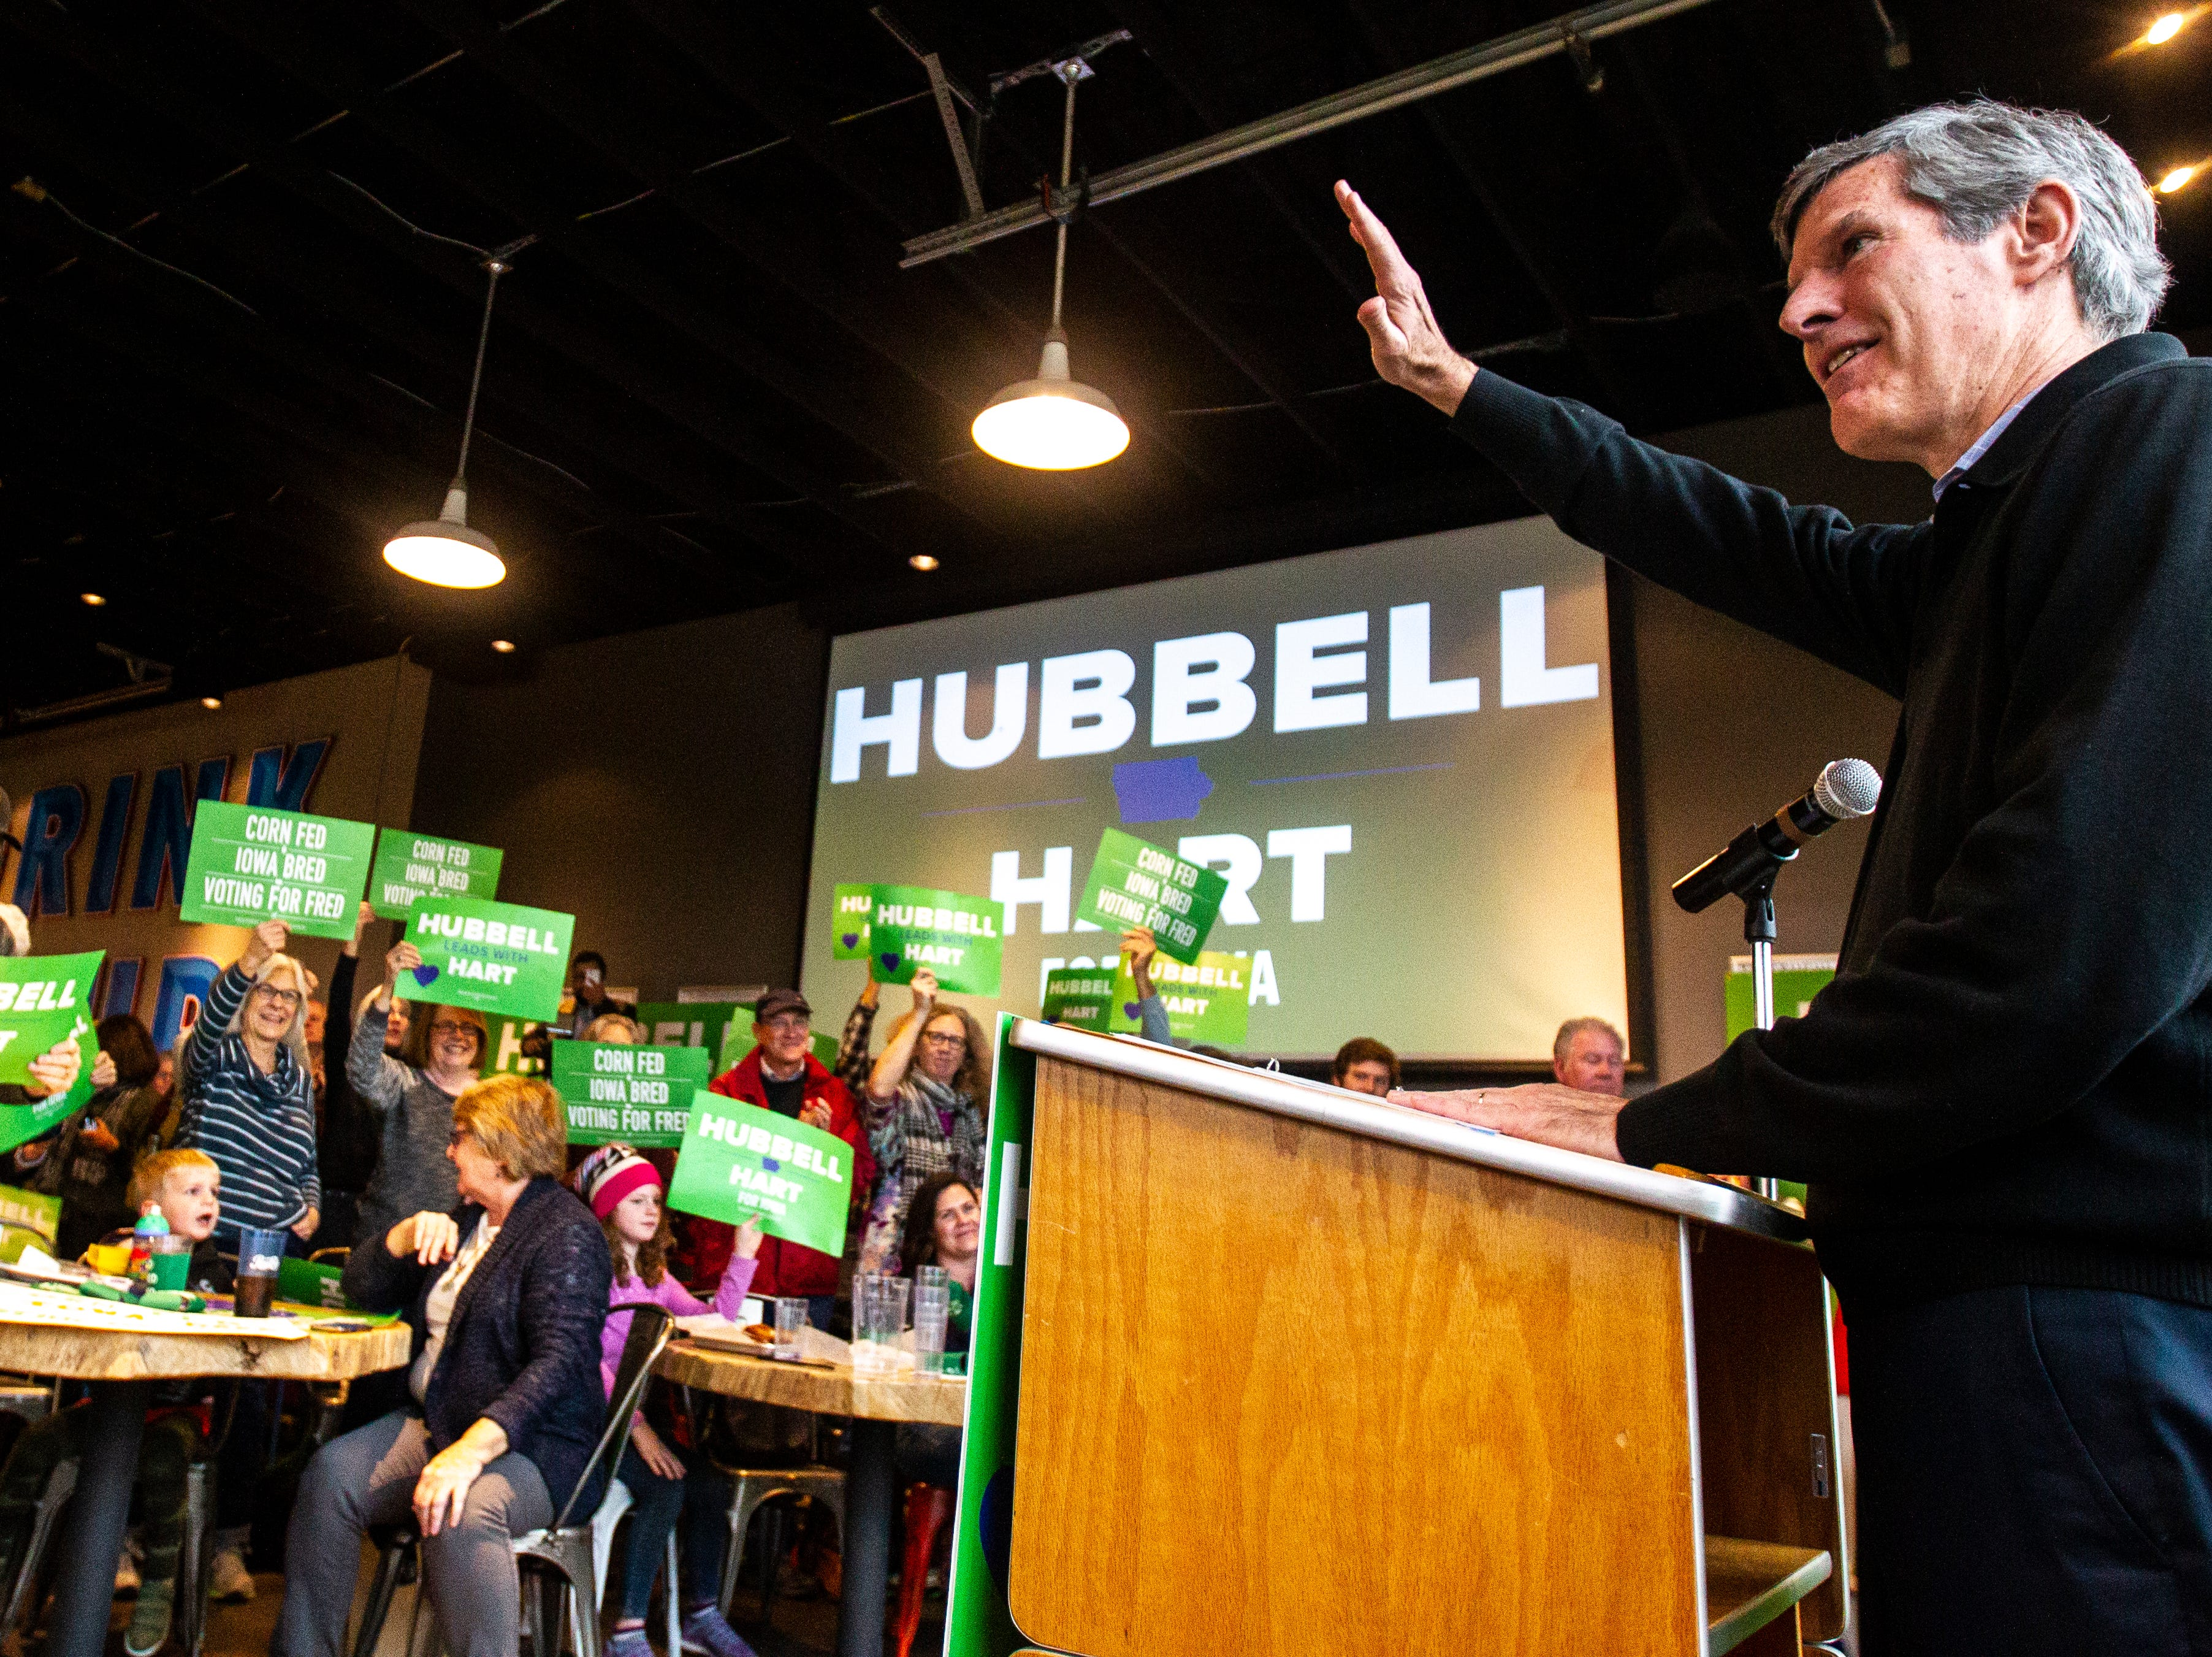 Fred Hubbell, Iowa Democratic candidate for governor, waves to supporters during a rally on Sunday, Nov. 4, 2018, at Big Grove Brewery in Iowa City.